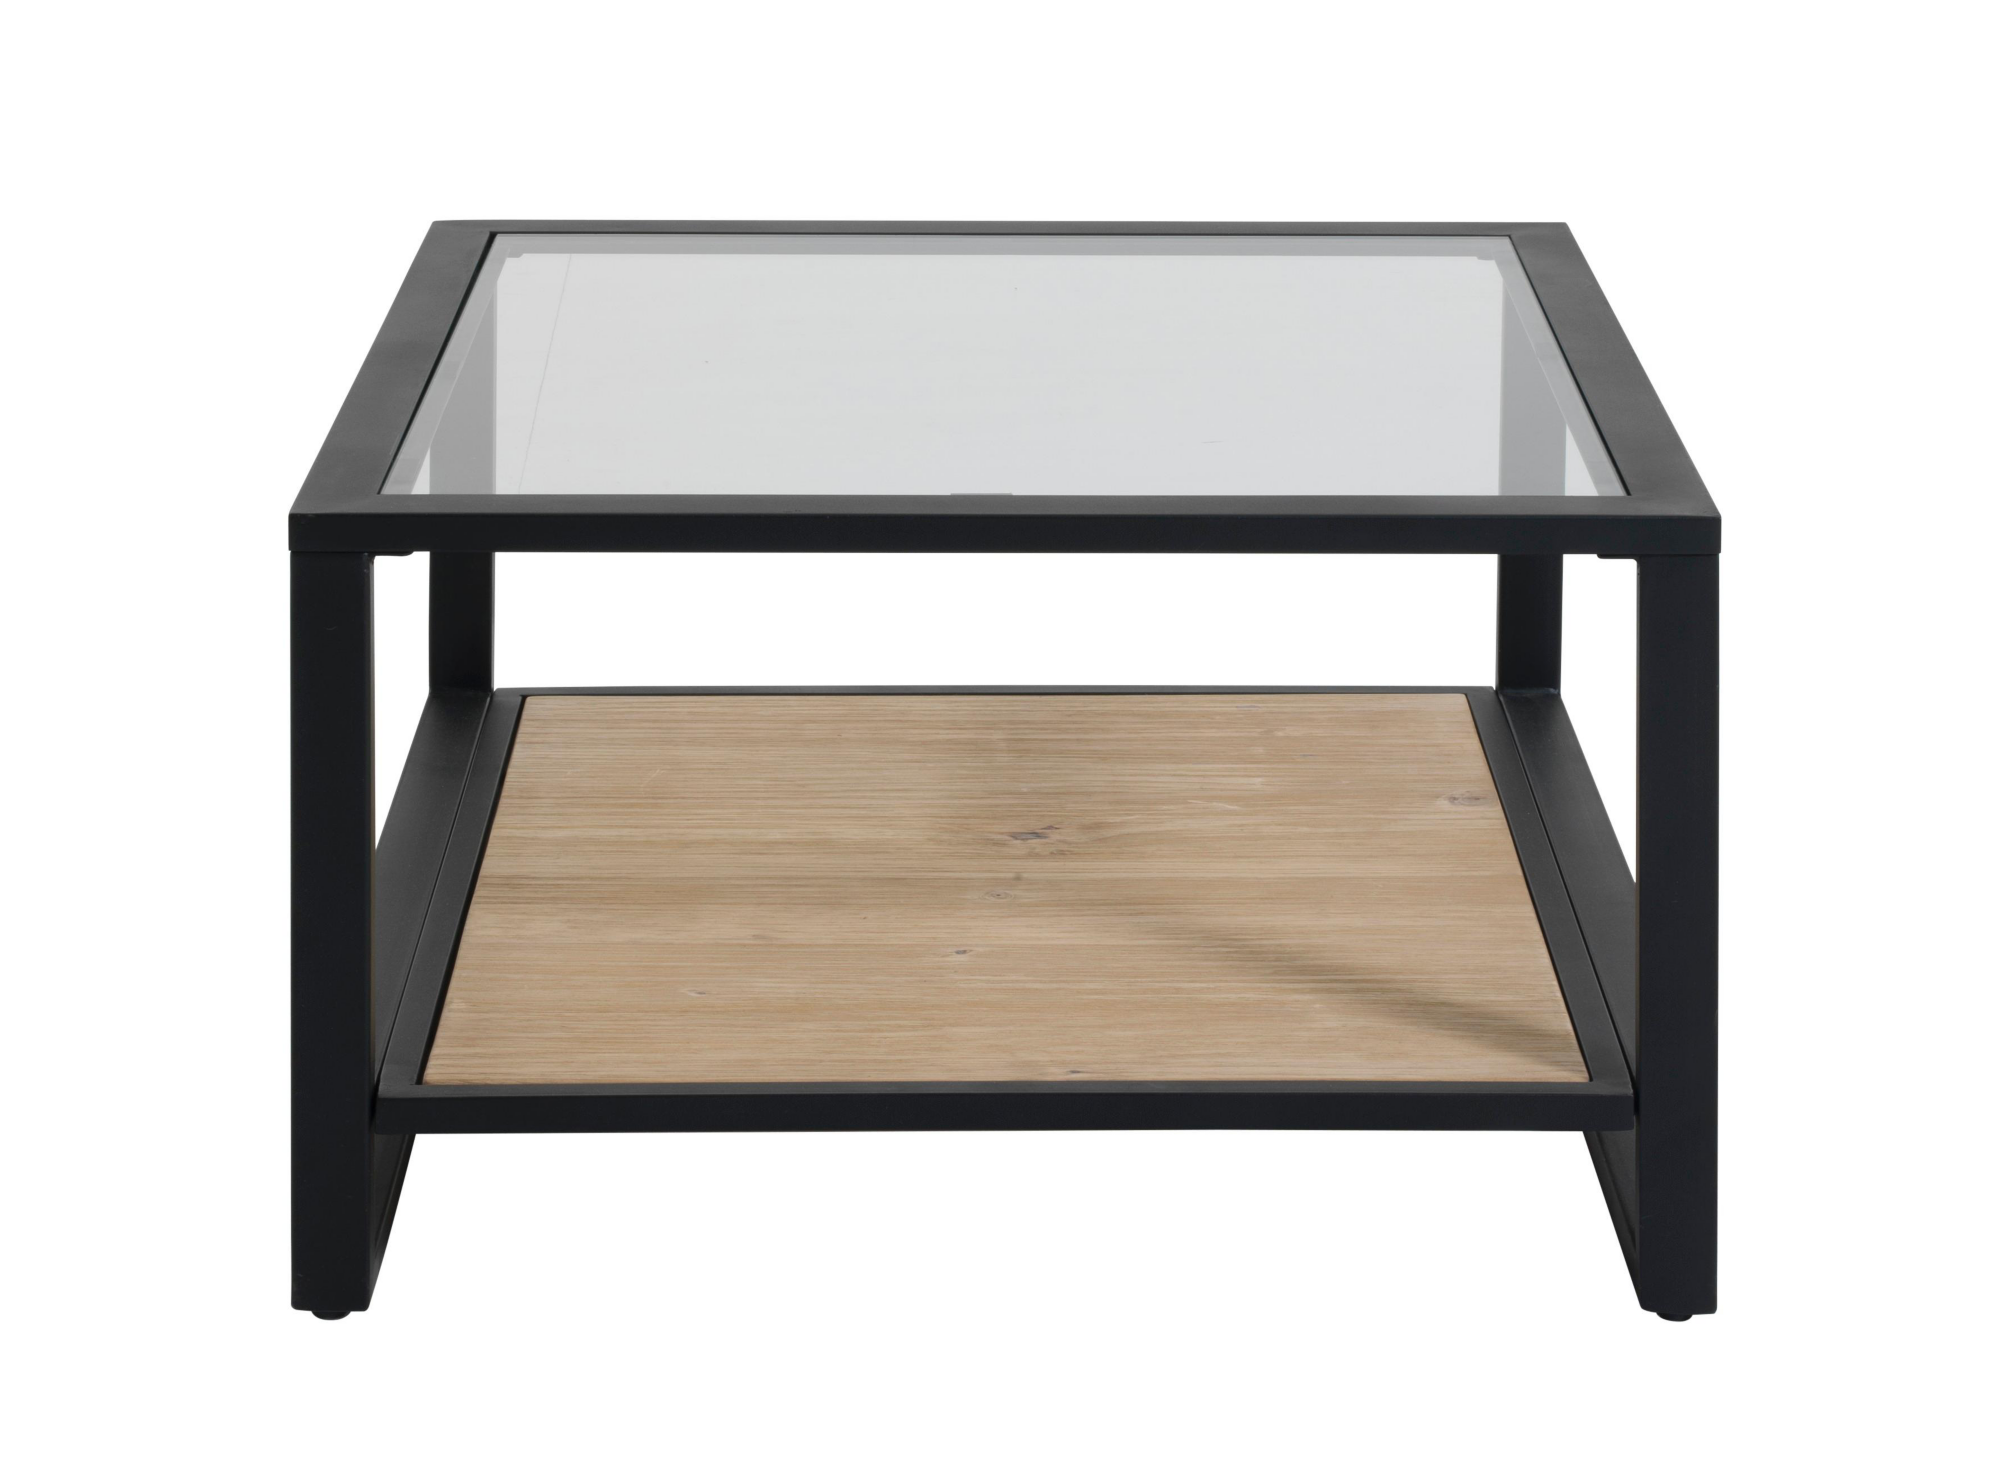 Table basse carree.structure e t pietement enfer laque epoxy noir.pla ...